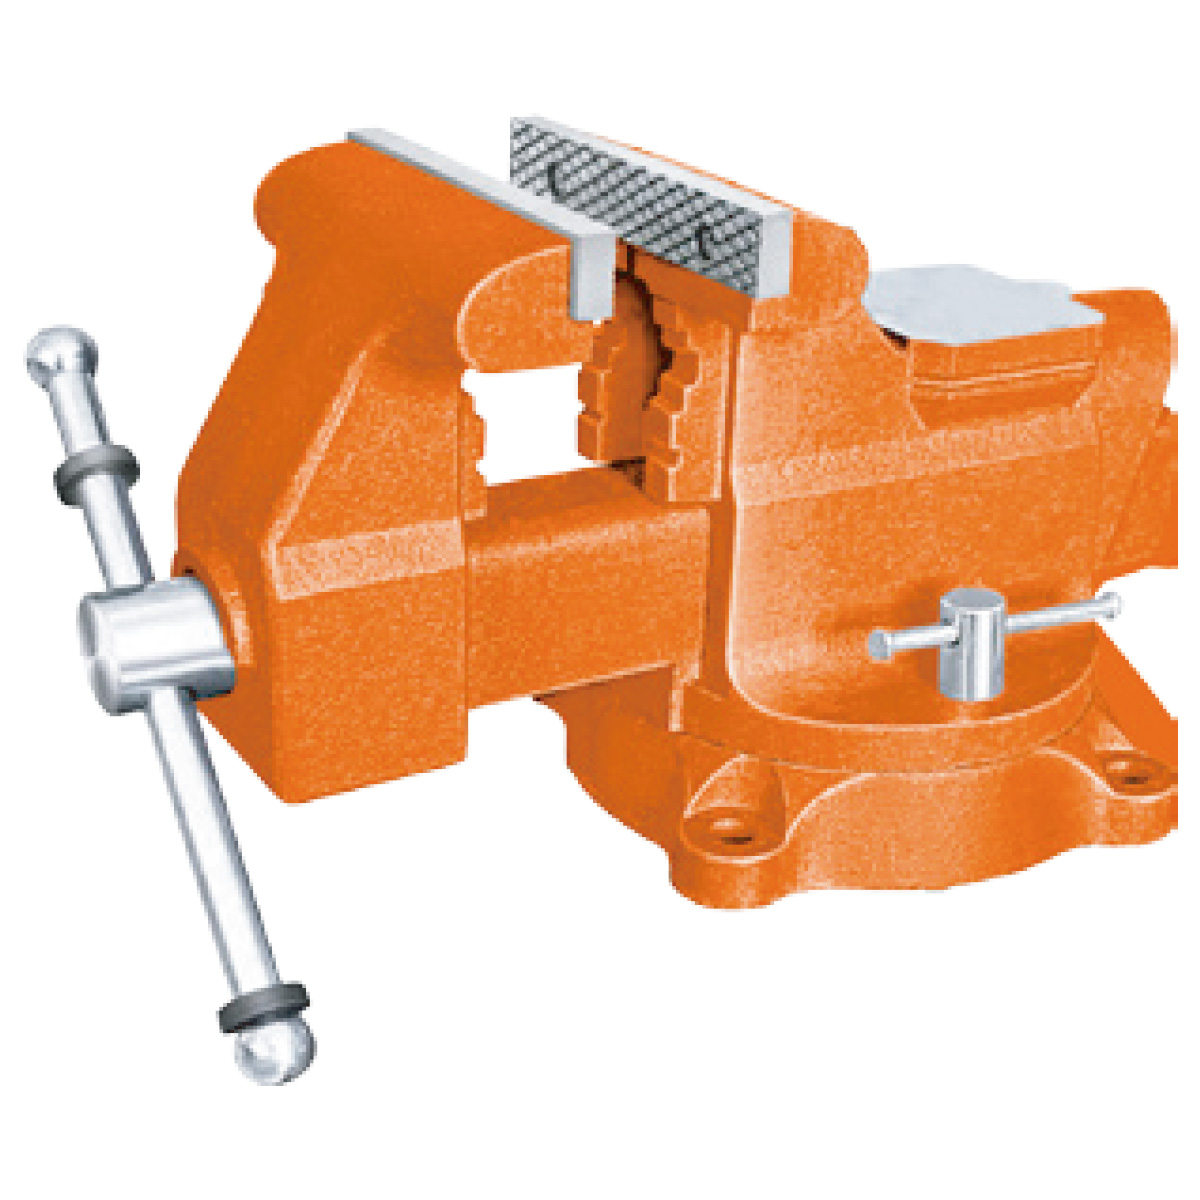 AMERICAN PROFESSIONAL HEAVY DUTY BENCH VISE